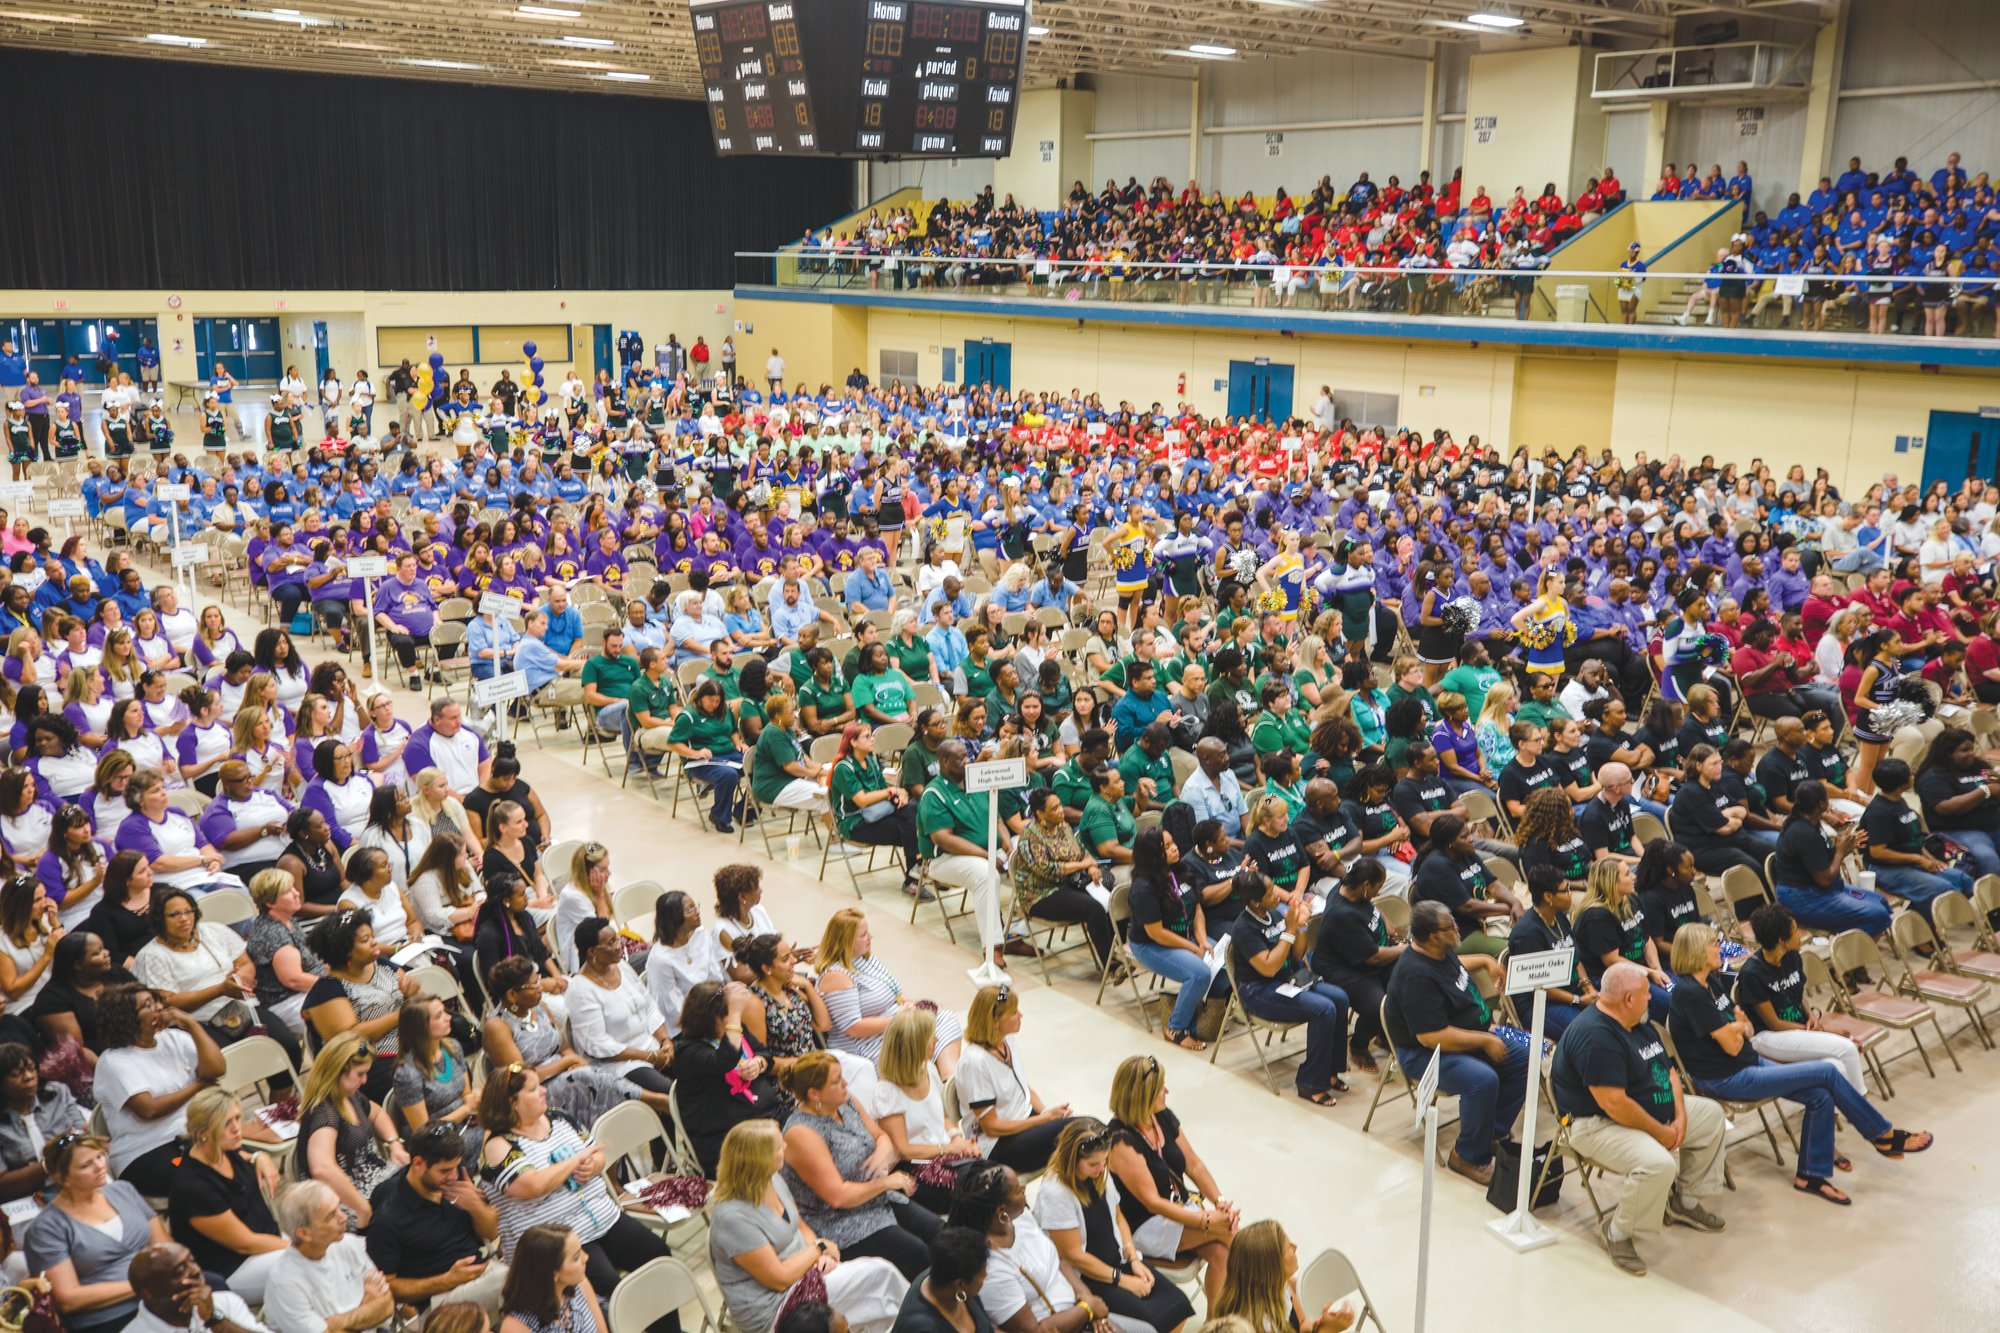 Scenes from the first meeting for the Sumter School District and teacher pep rally at the Sumter Civic Center on Friday.